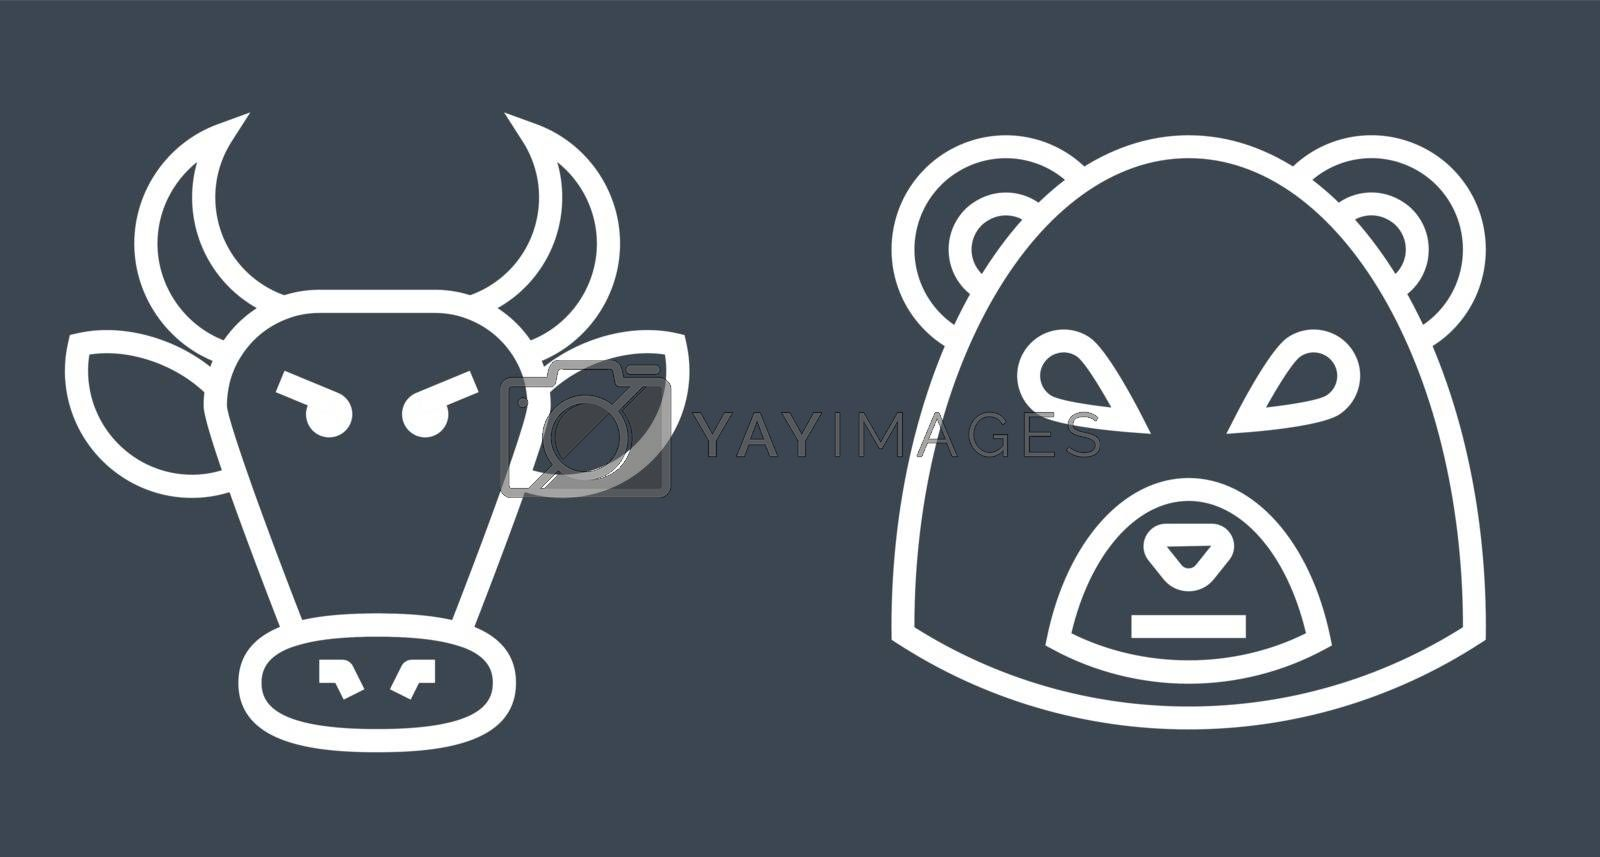 Stock Market Bulls and Bears Thin Line Vector Icon. Flat icon isolated on the black background. Editable EPS file. Vector illustration.